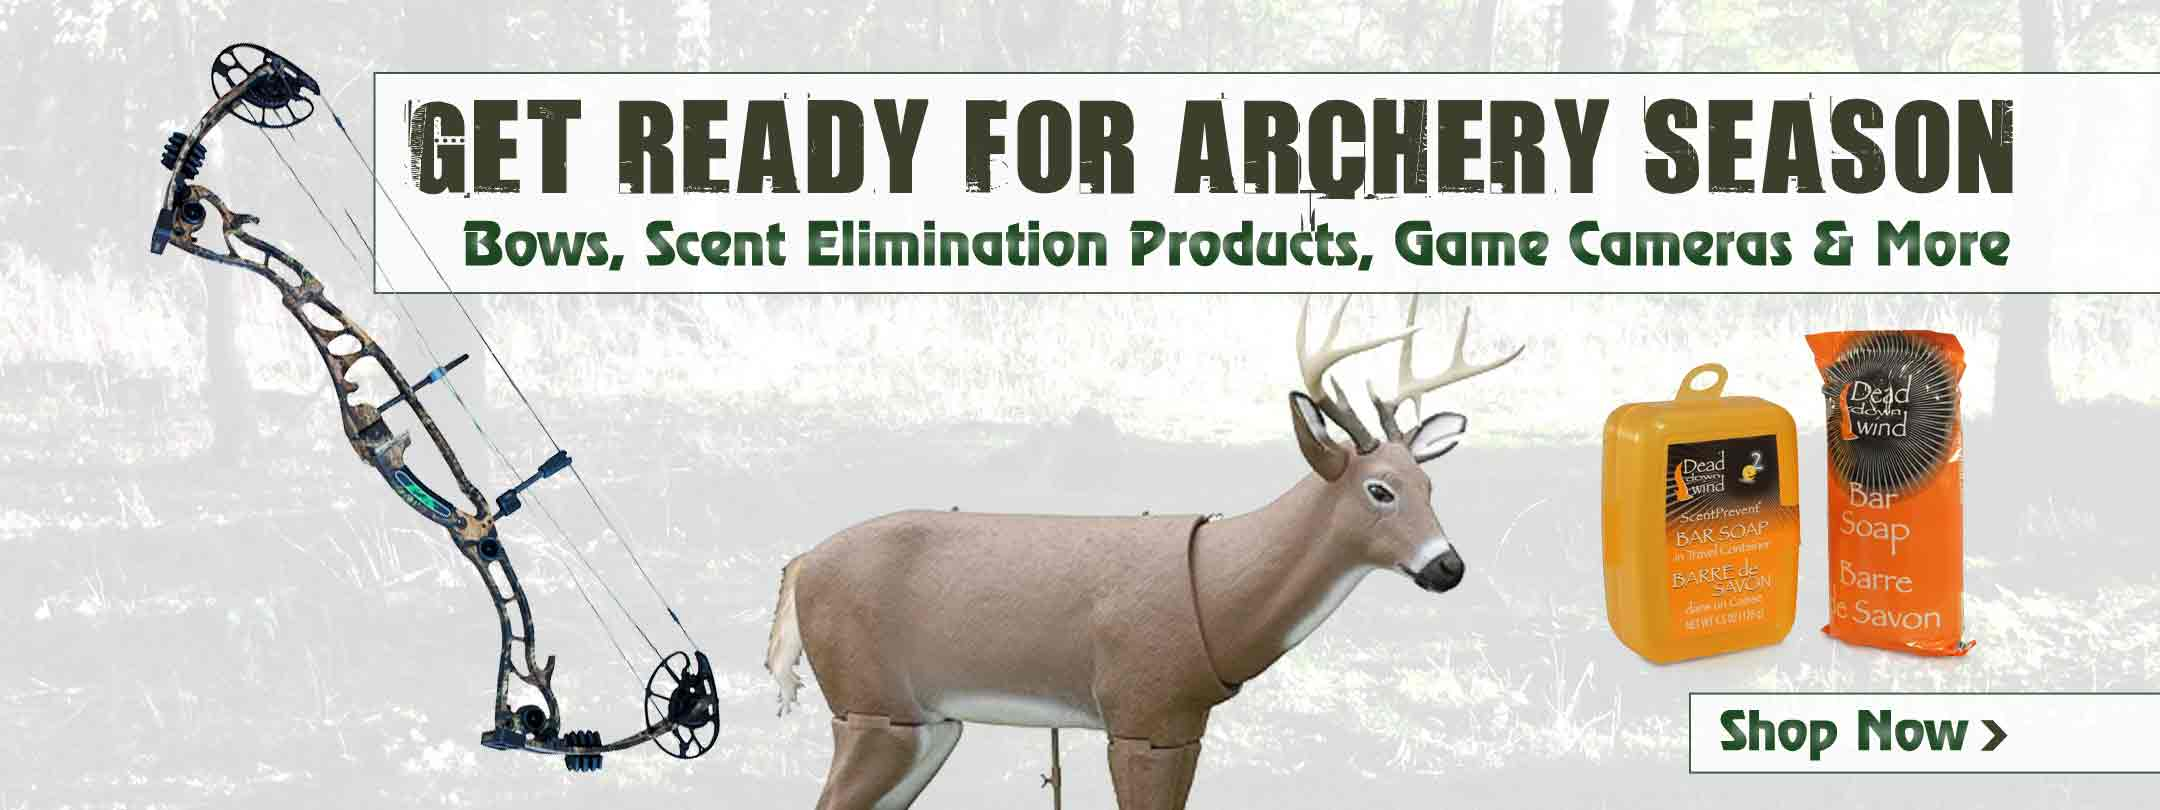 Get Ready for Archery Season